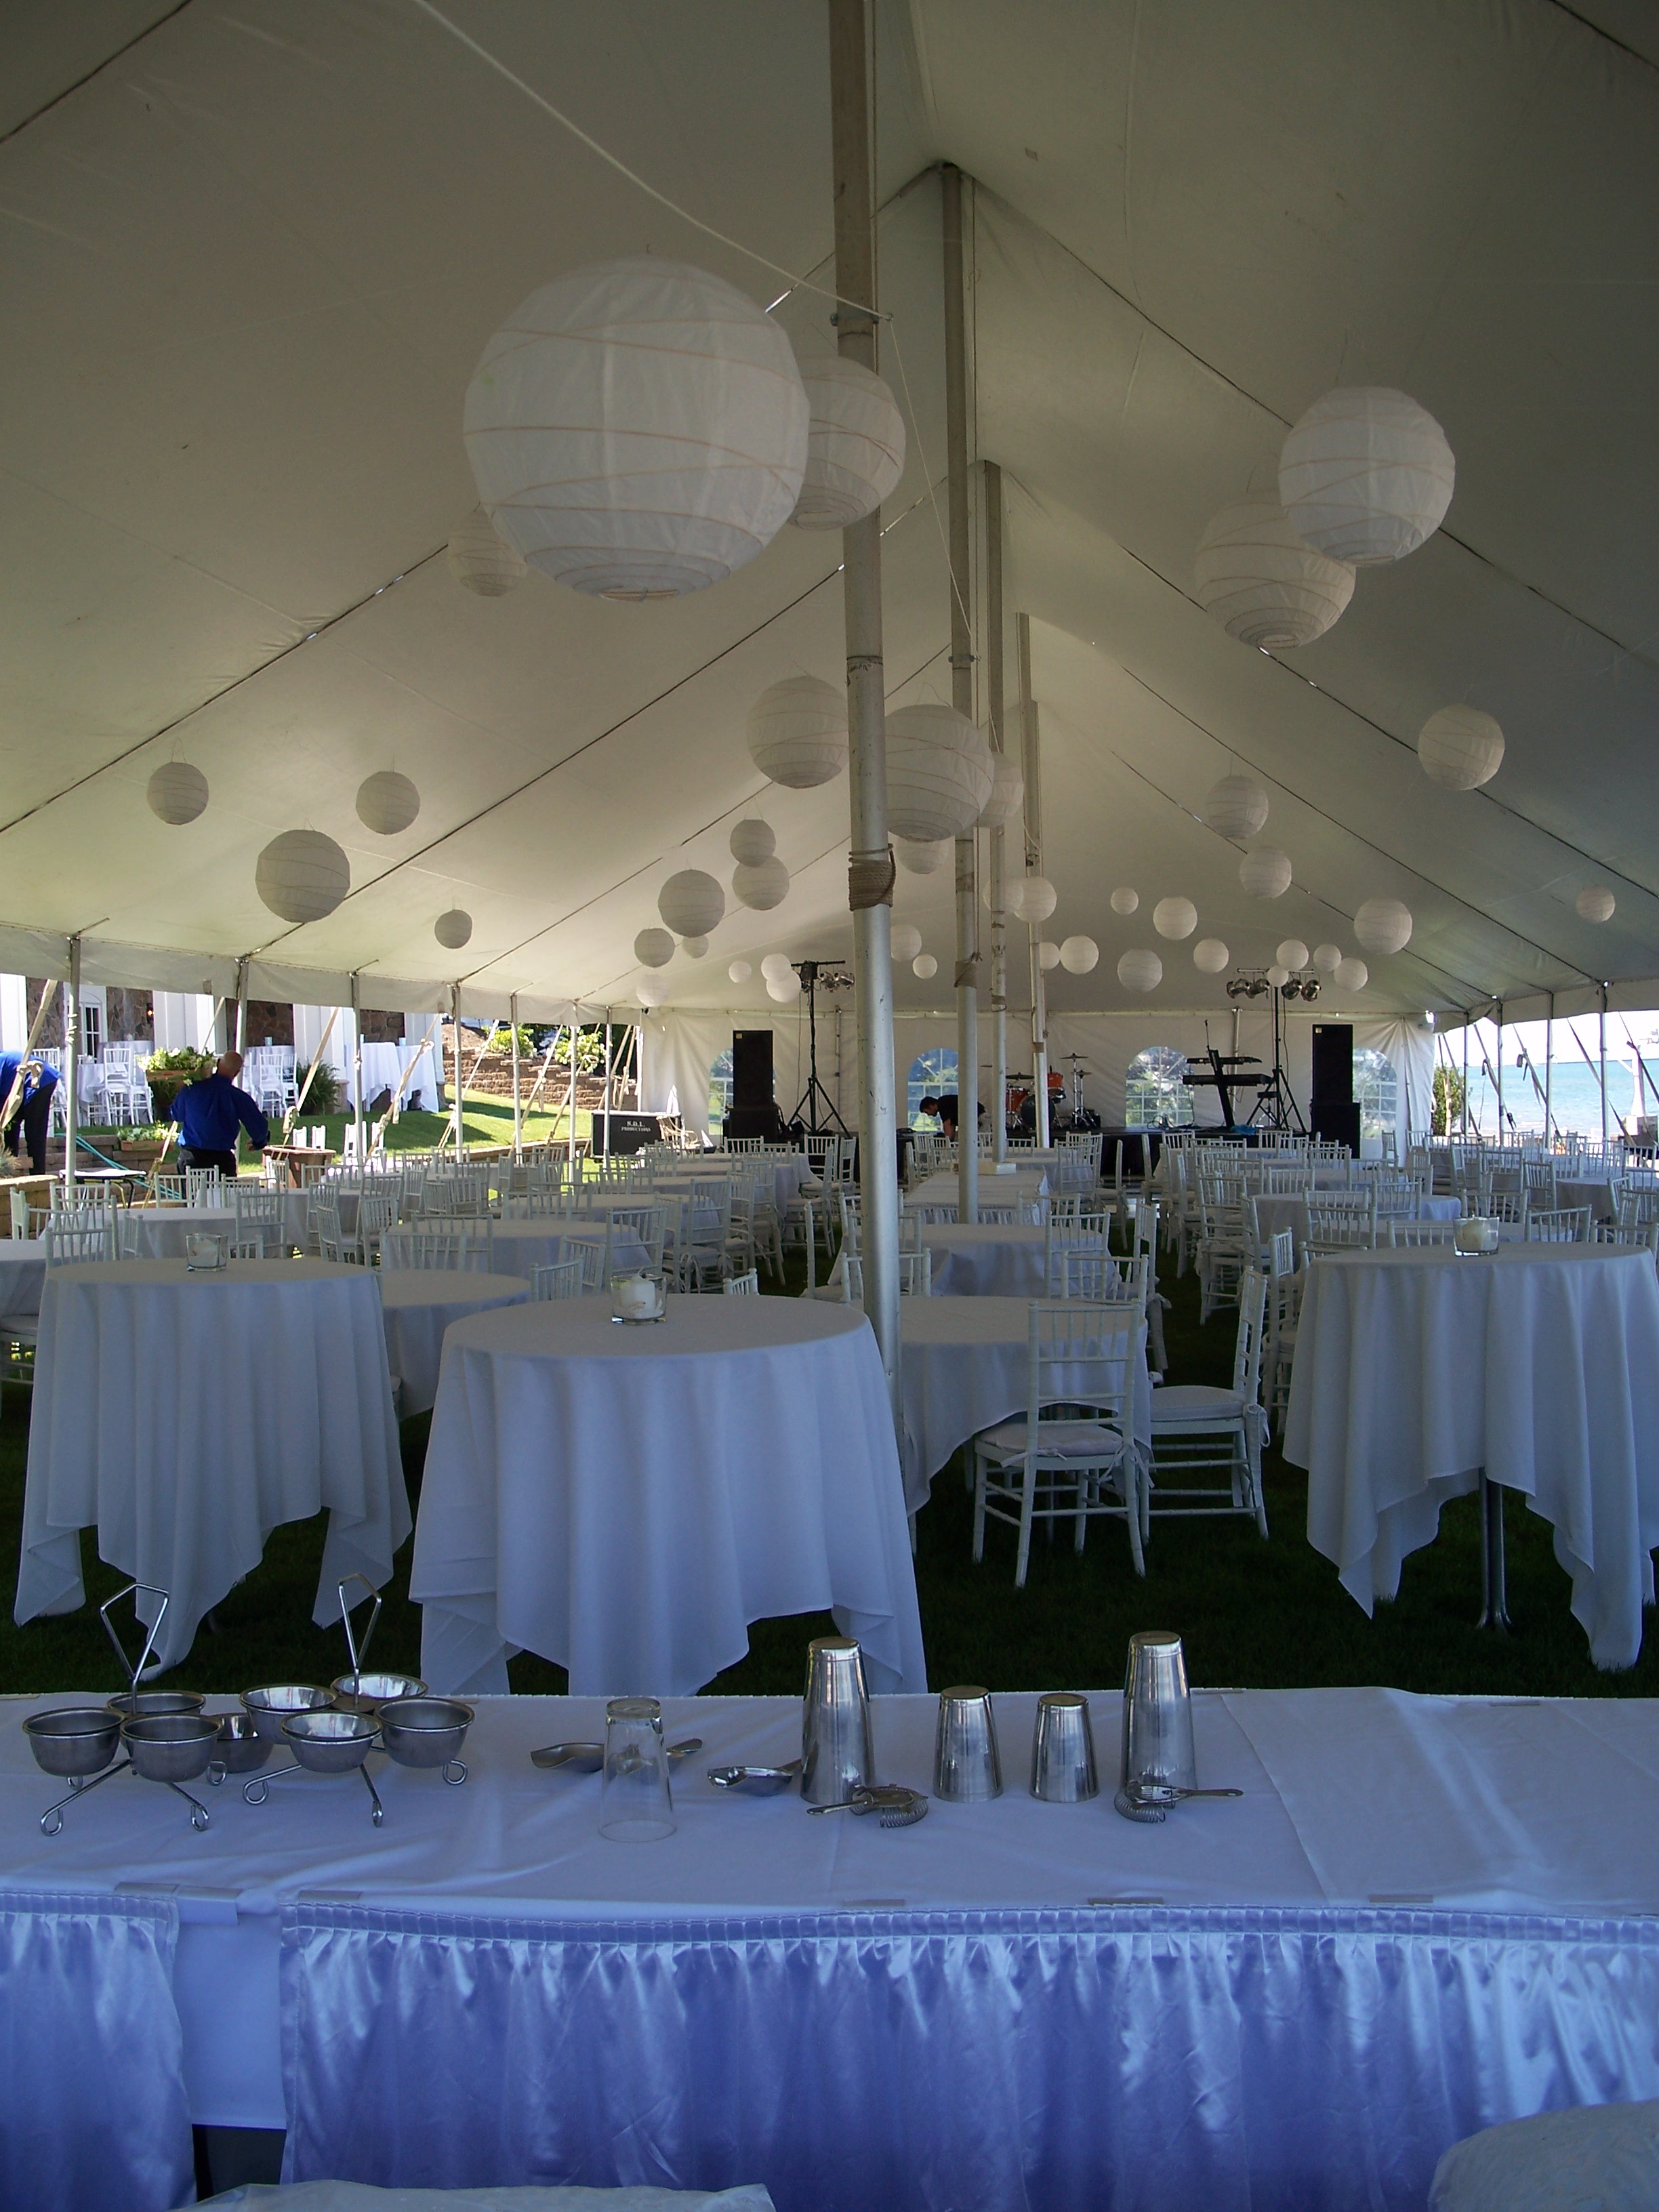 Secure A Tent For Any Outdoor Reception & 3 Tips for Securing Your Wedding Tent Rental - Spatolau0027s Party ...